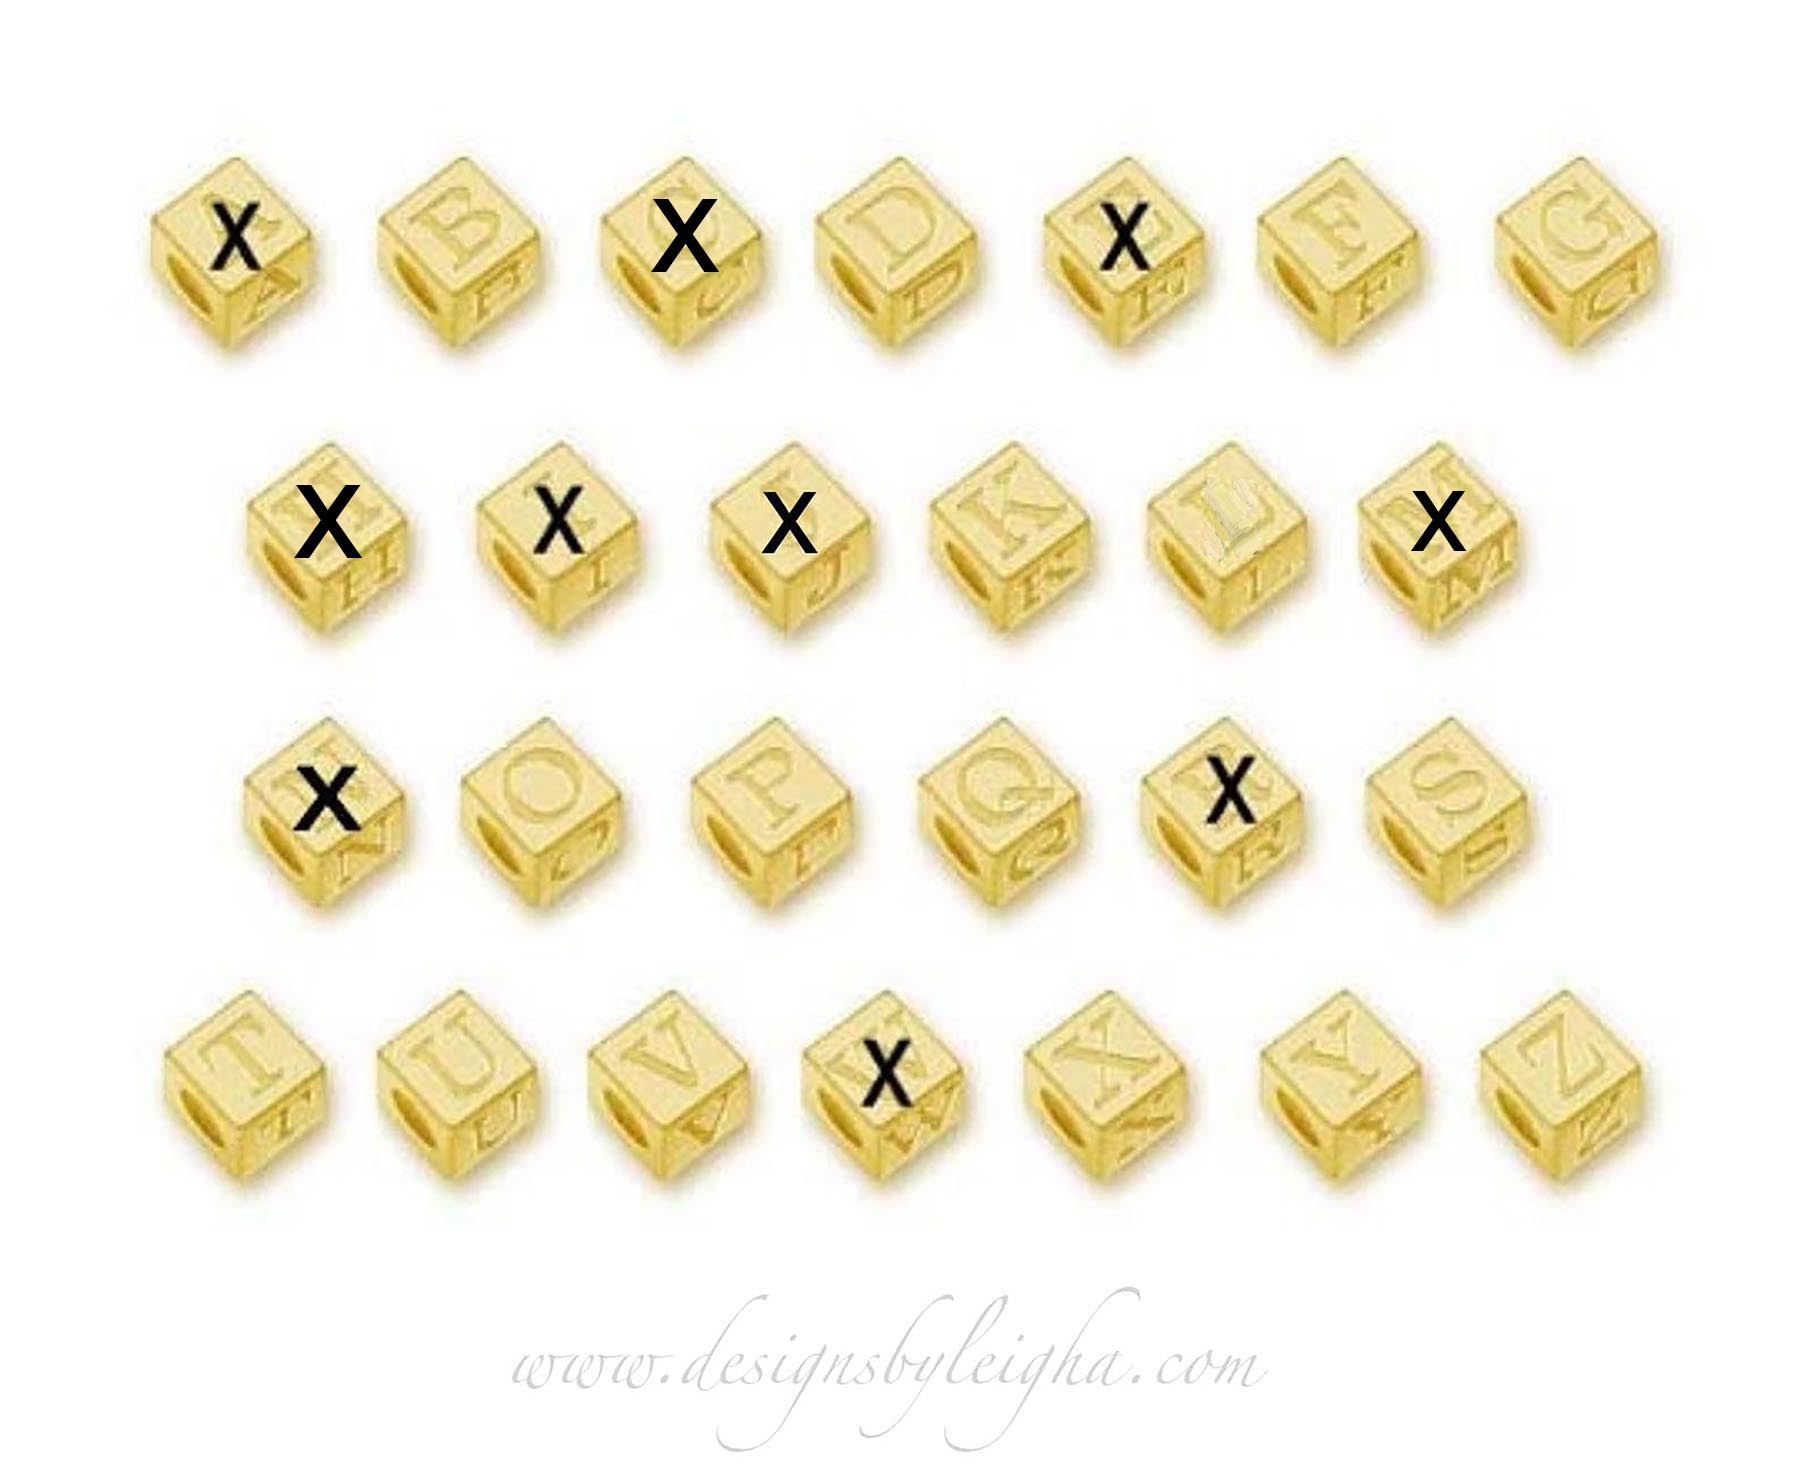 Gold Block Letters for Bracelets and Necklaces